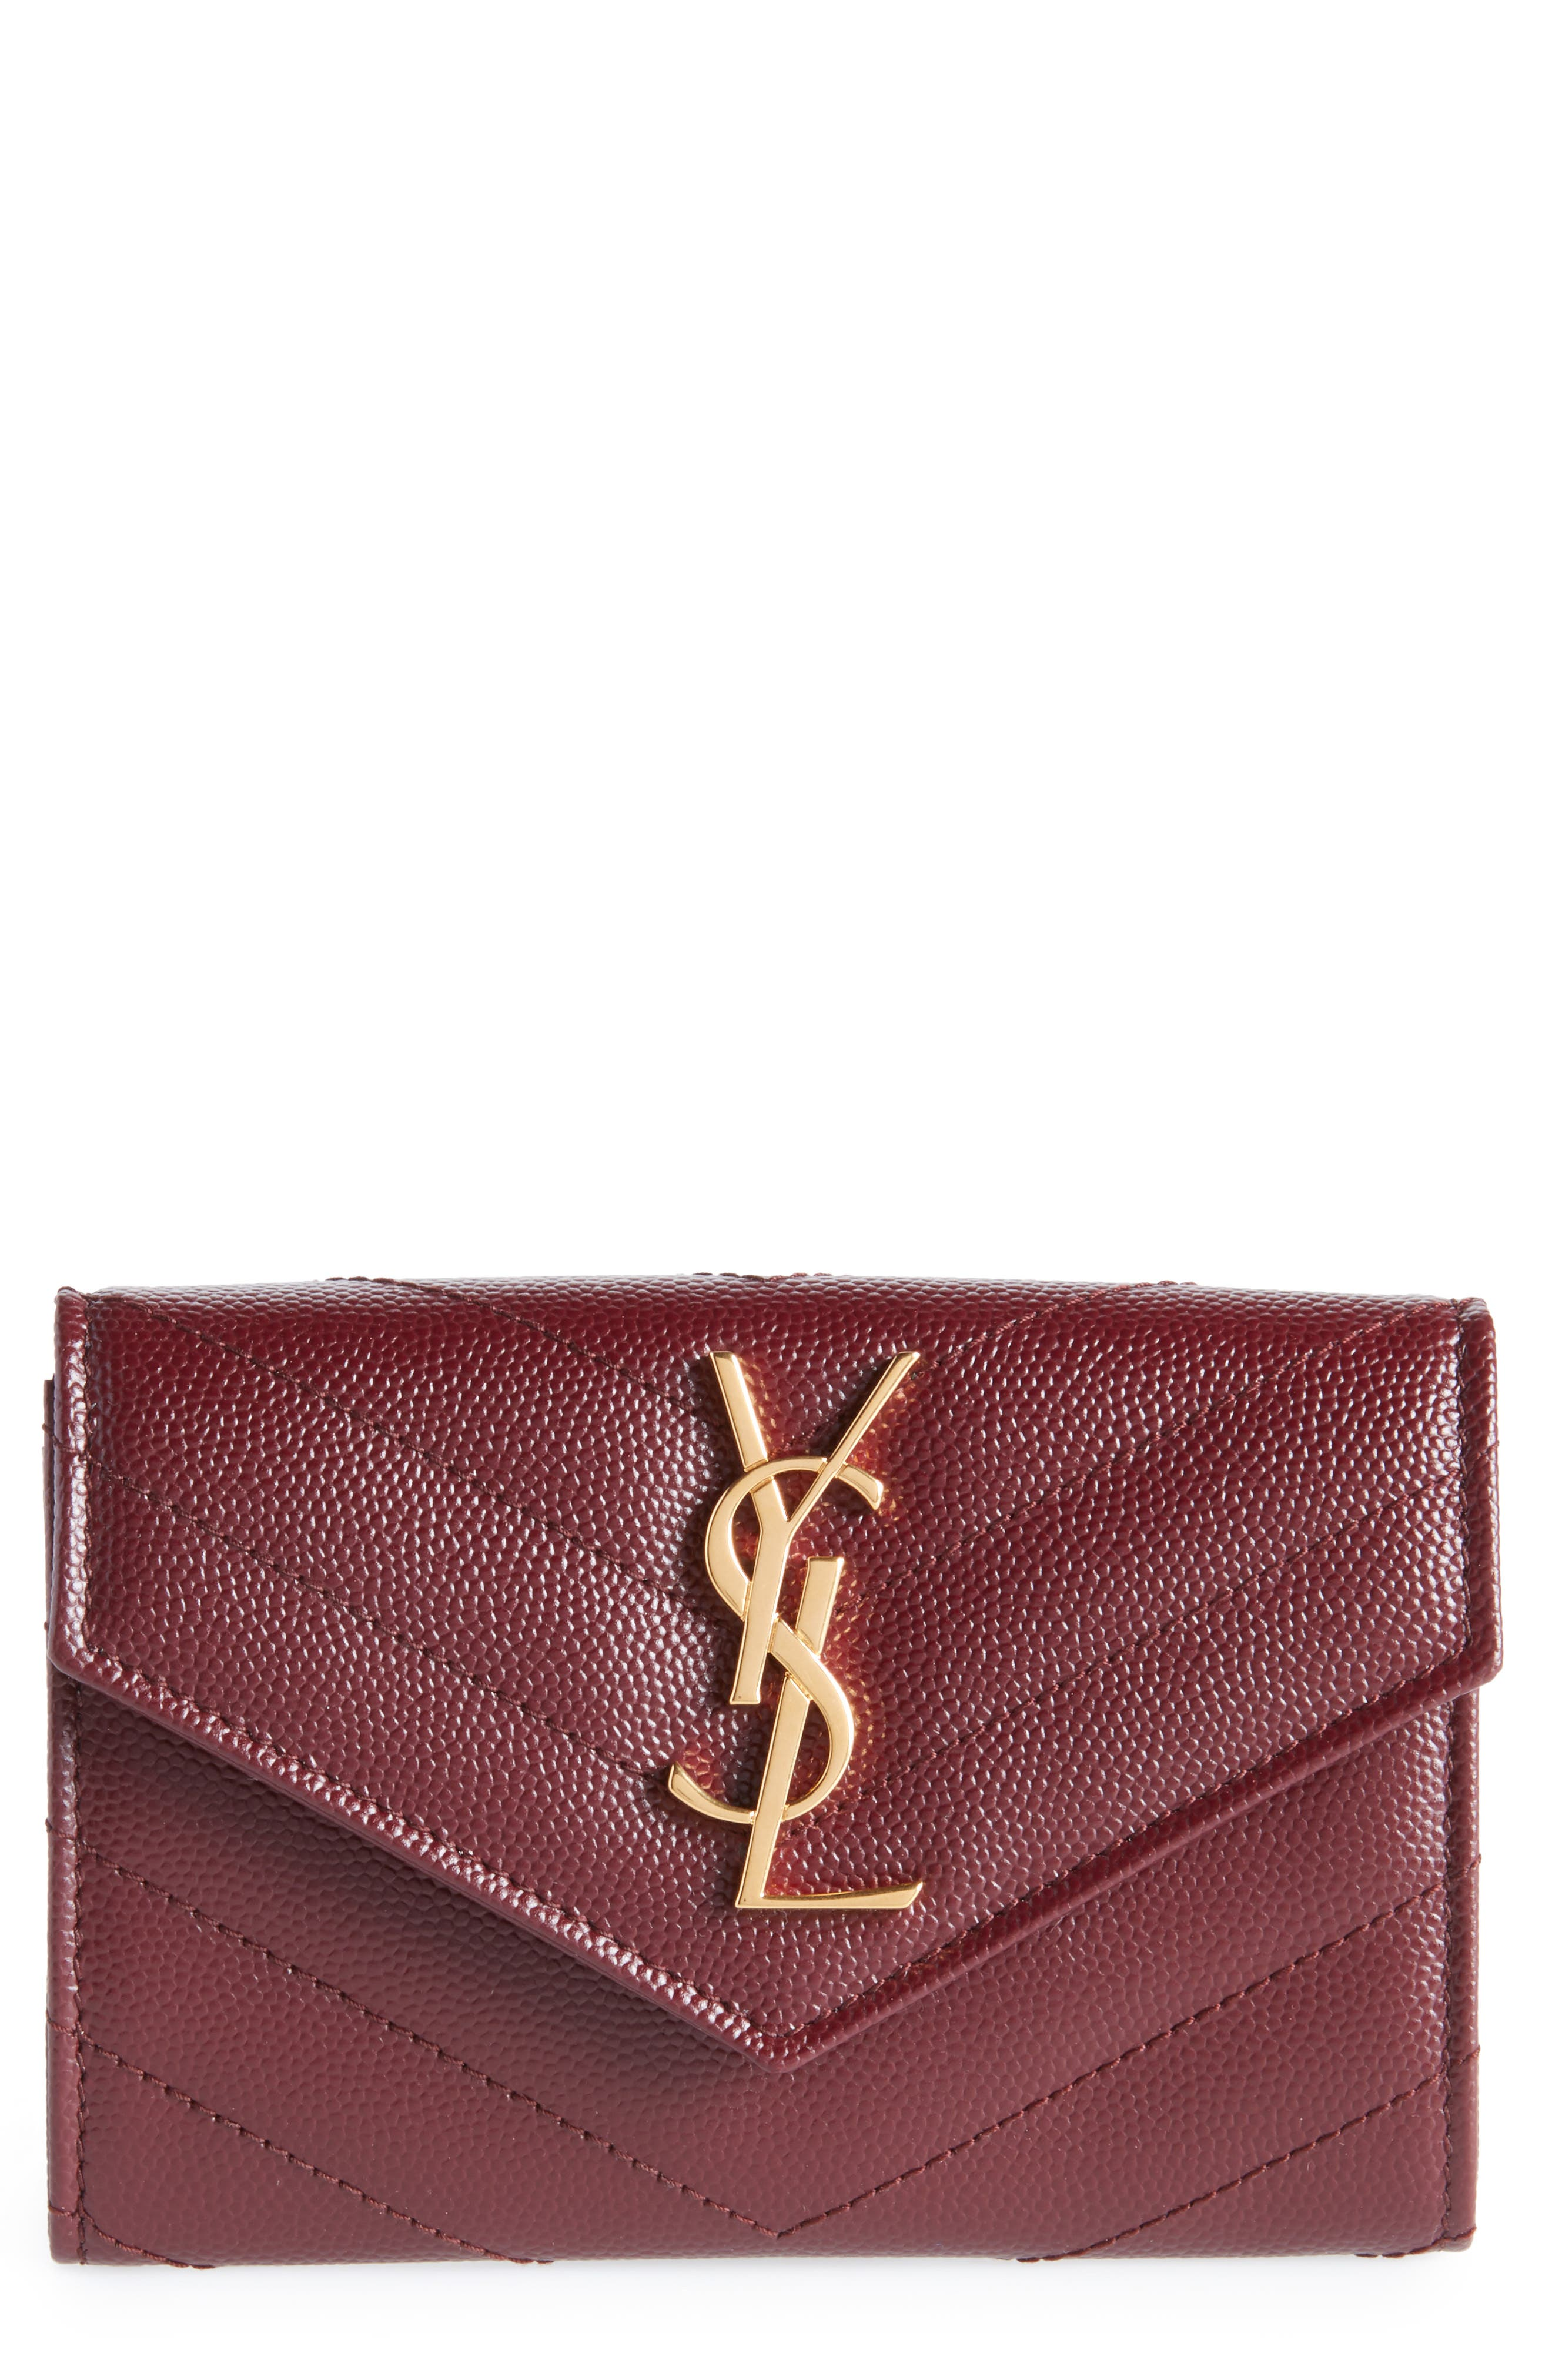 'Monogram' Quilted Leather French Wallet,                         Main,                         color, ROUGE LEGION